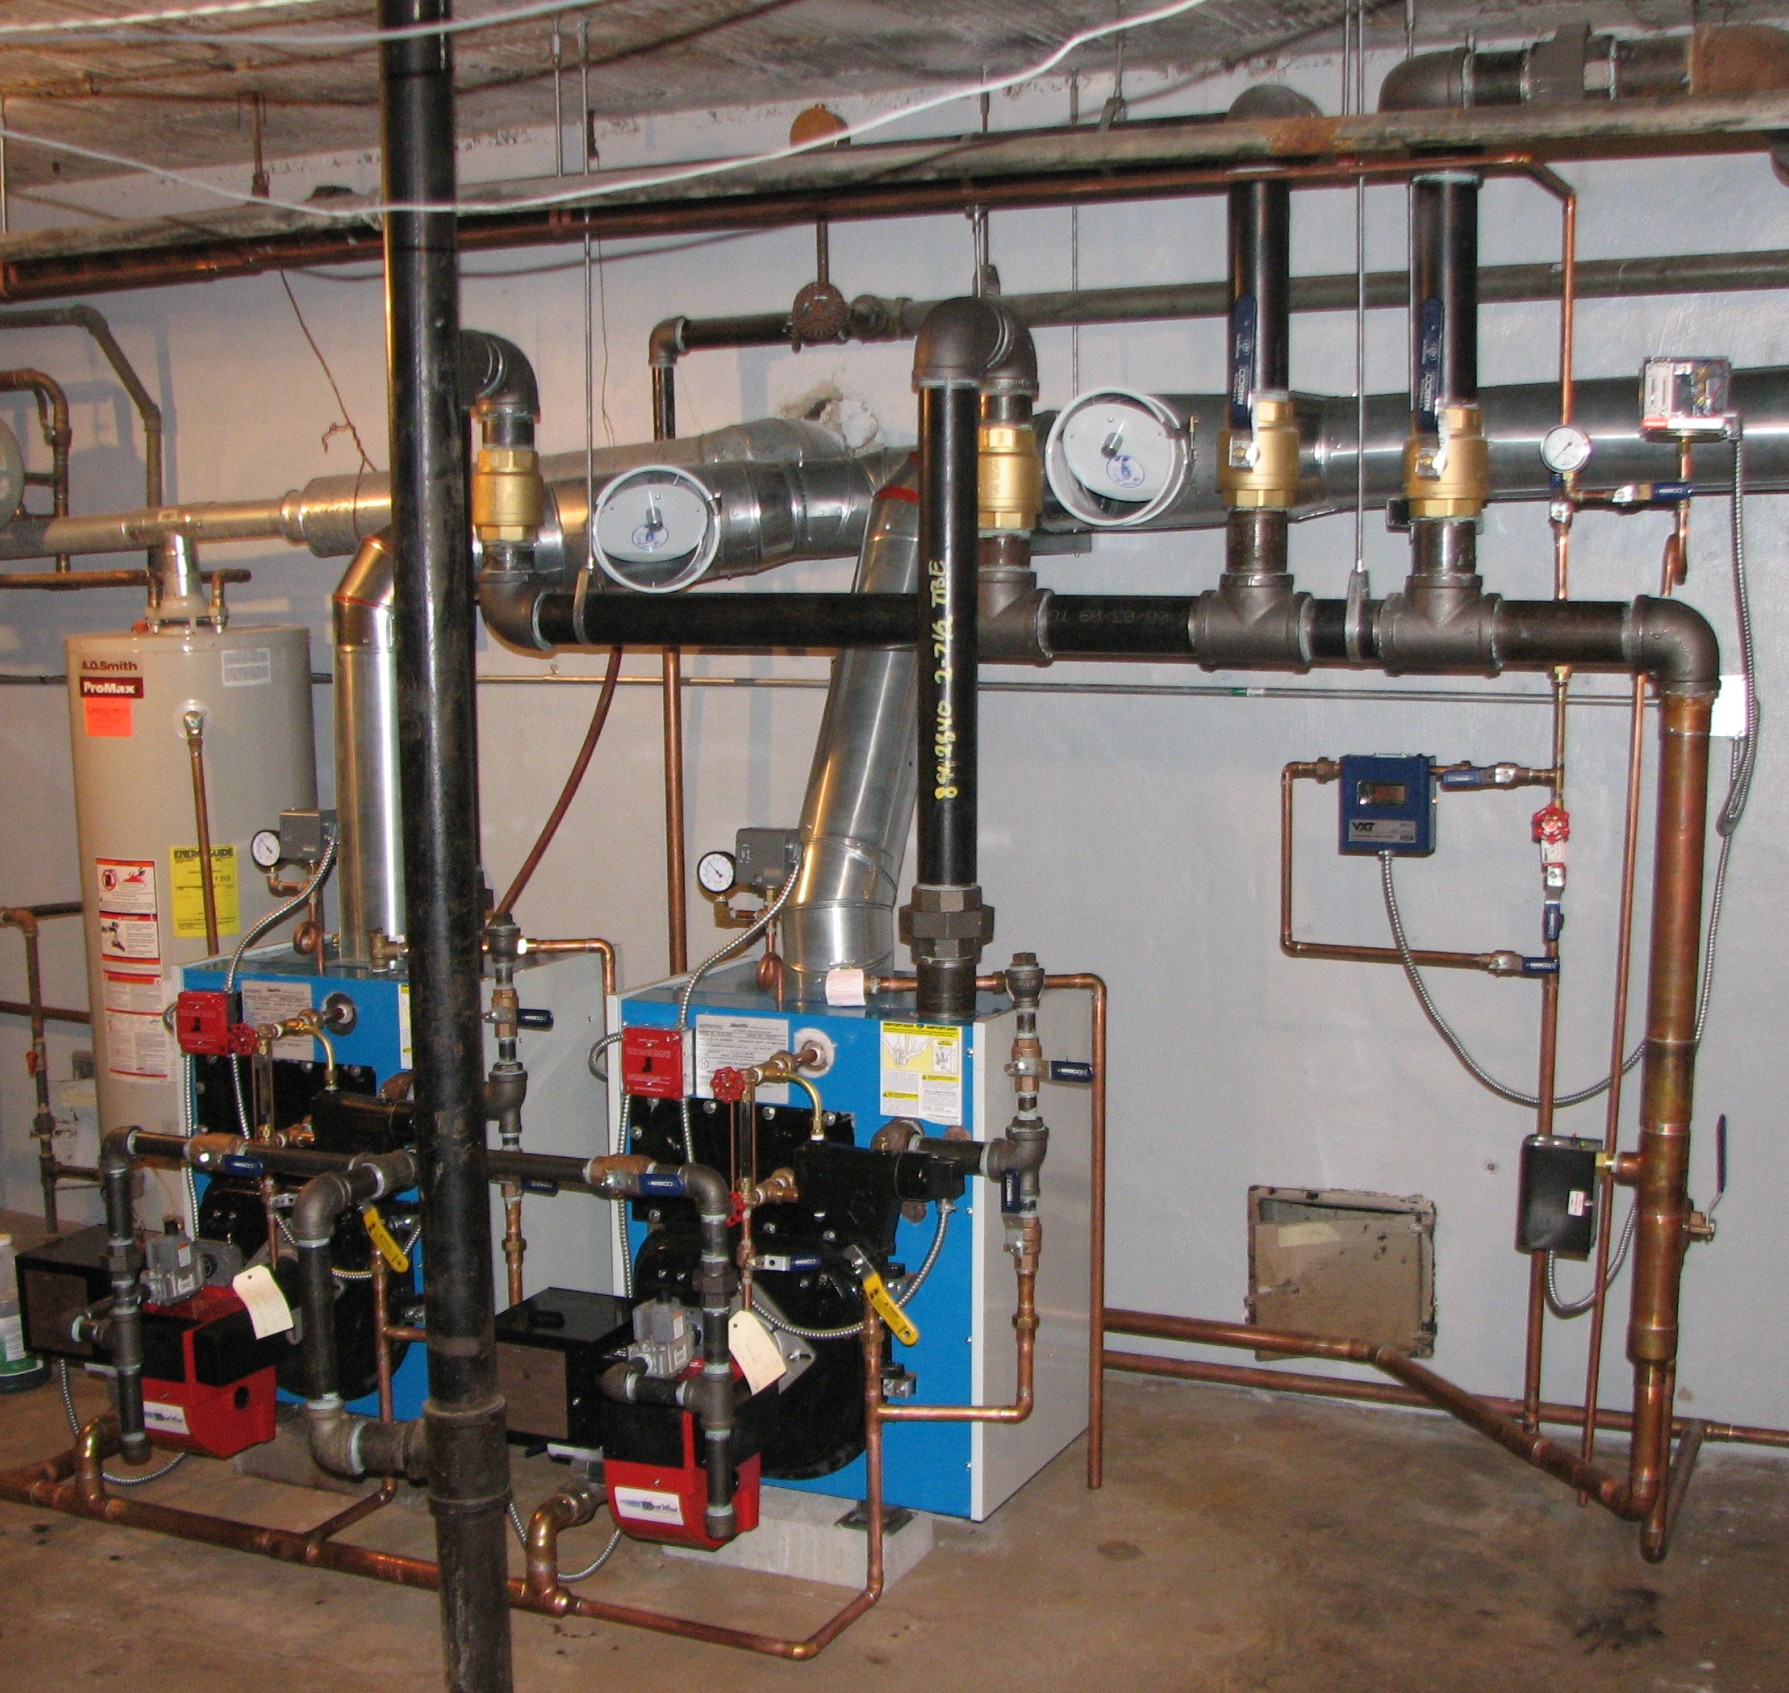 slant fin boiler wiring diagram two steam boilers in parallel? — heating help: the wall